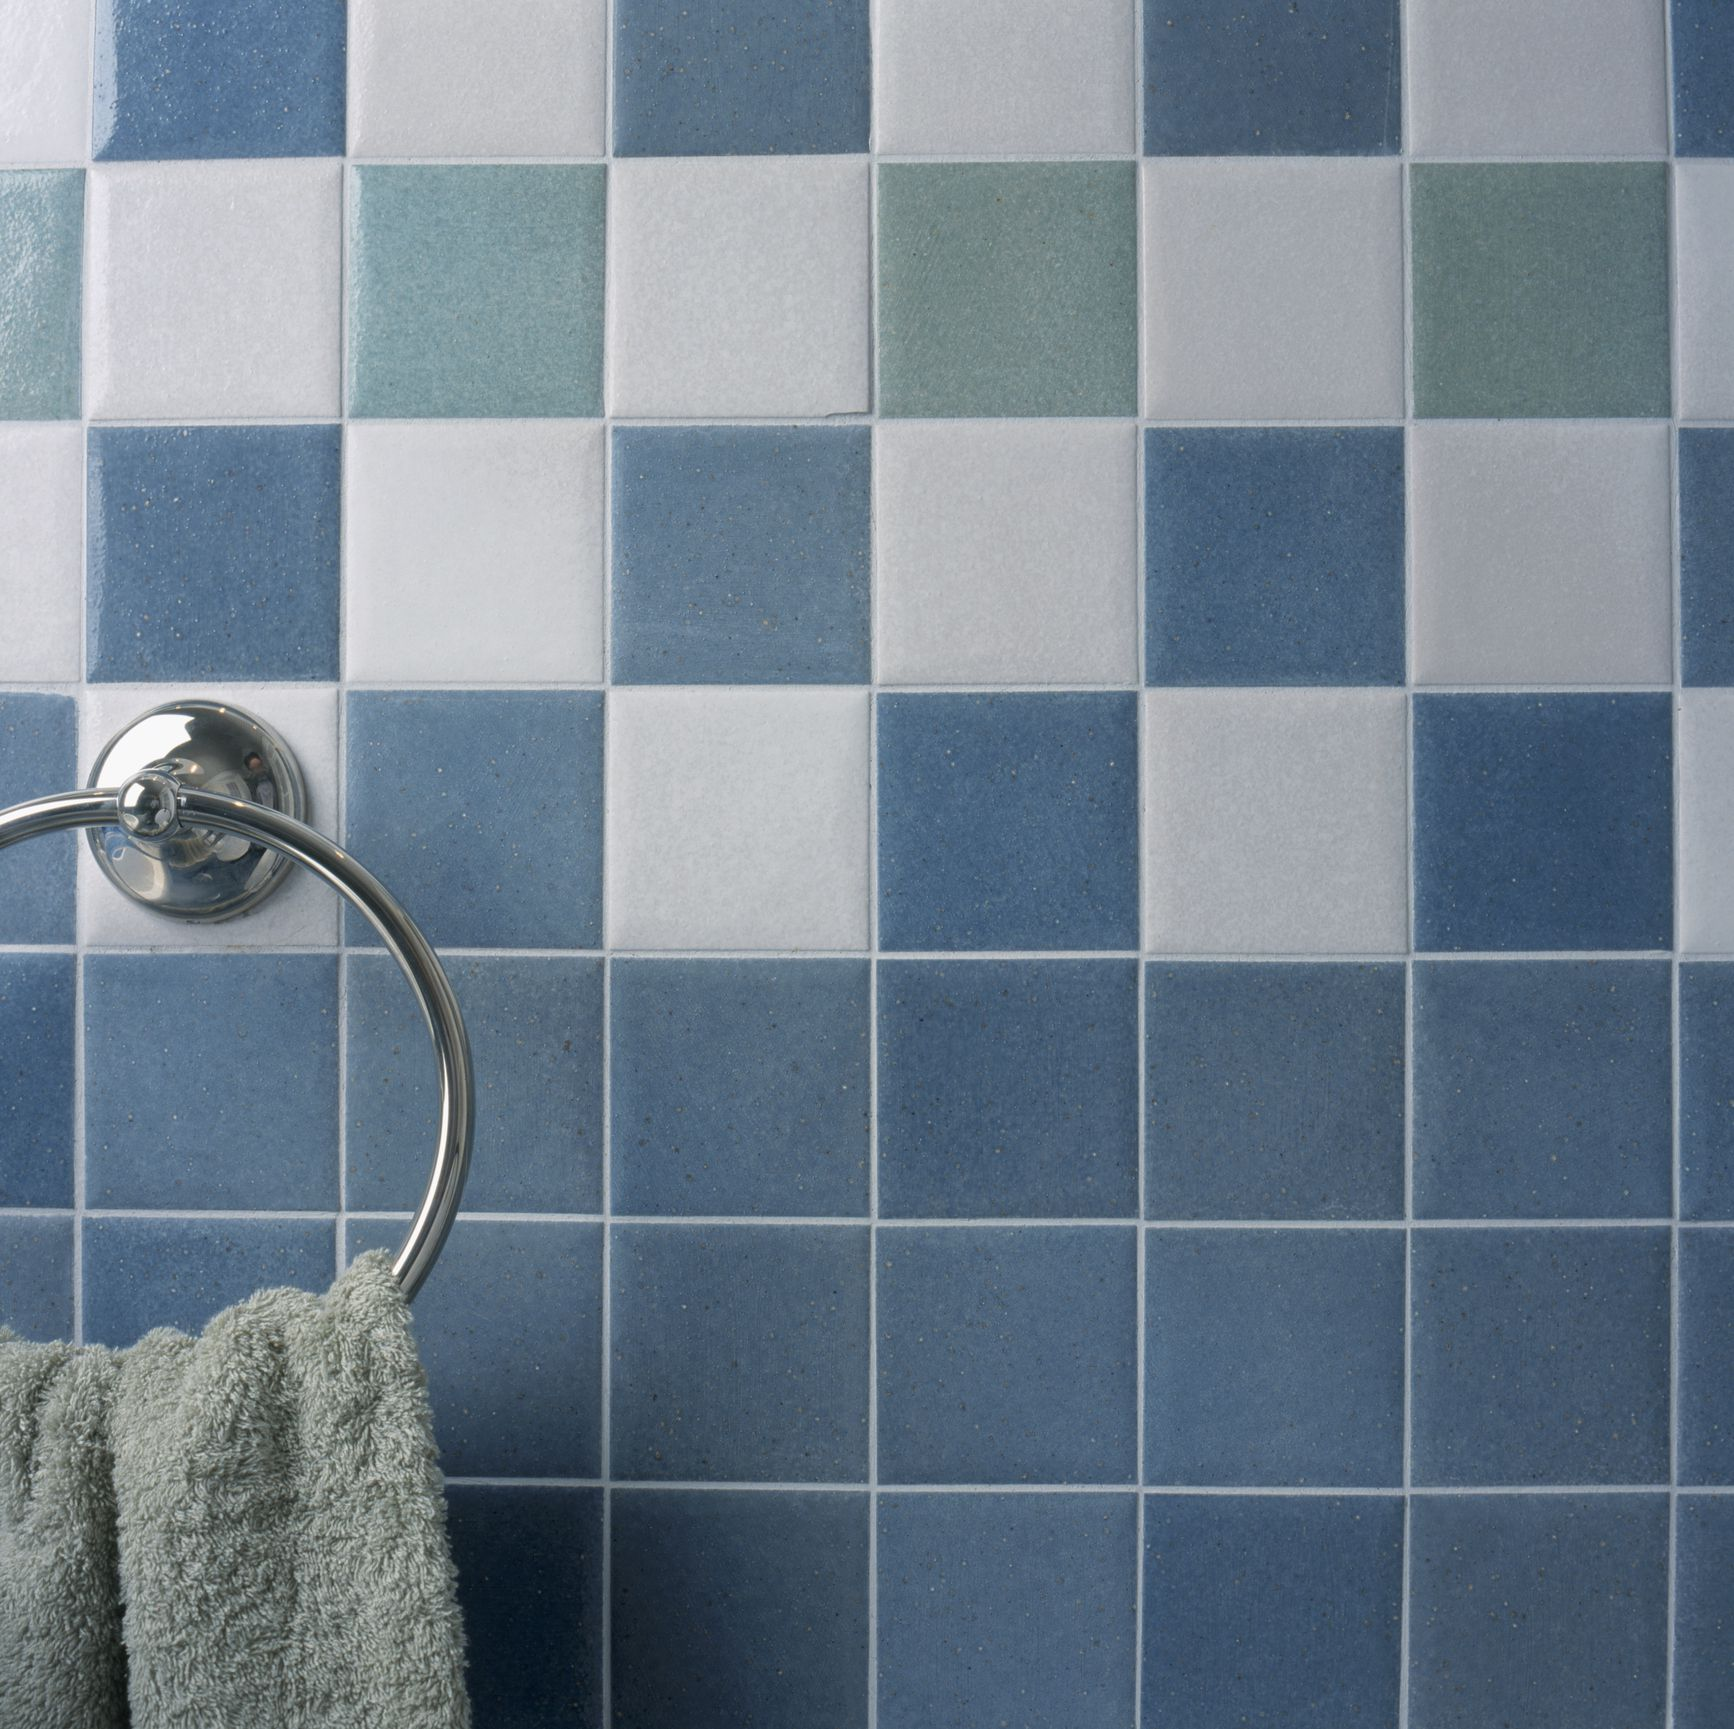 Glass Tiles In Bathroom: Removing Tile Grout In A Few Simple Steps